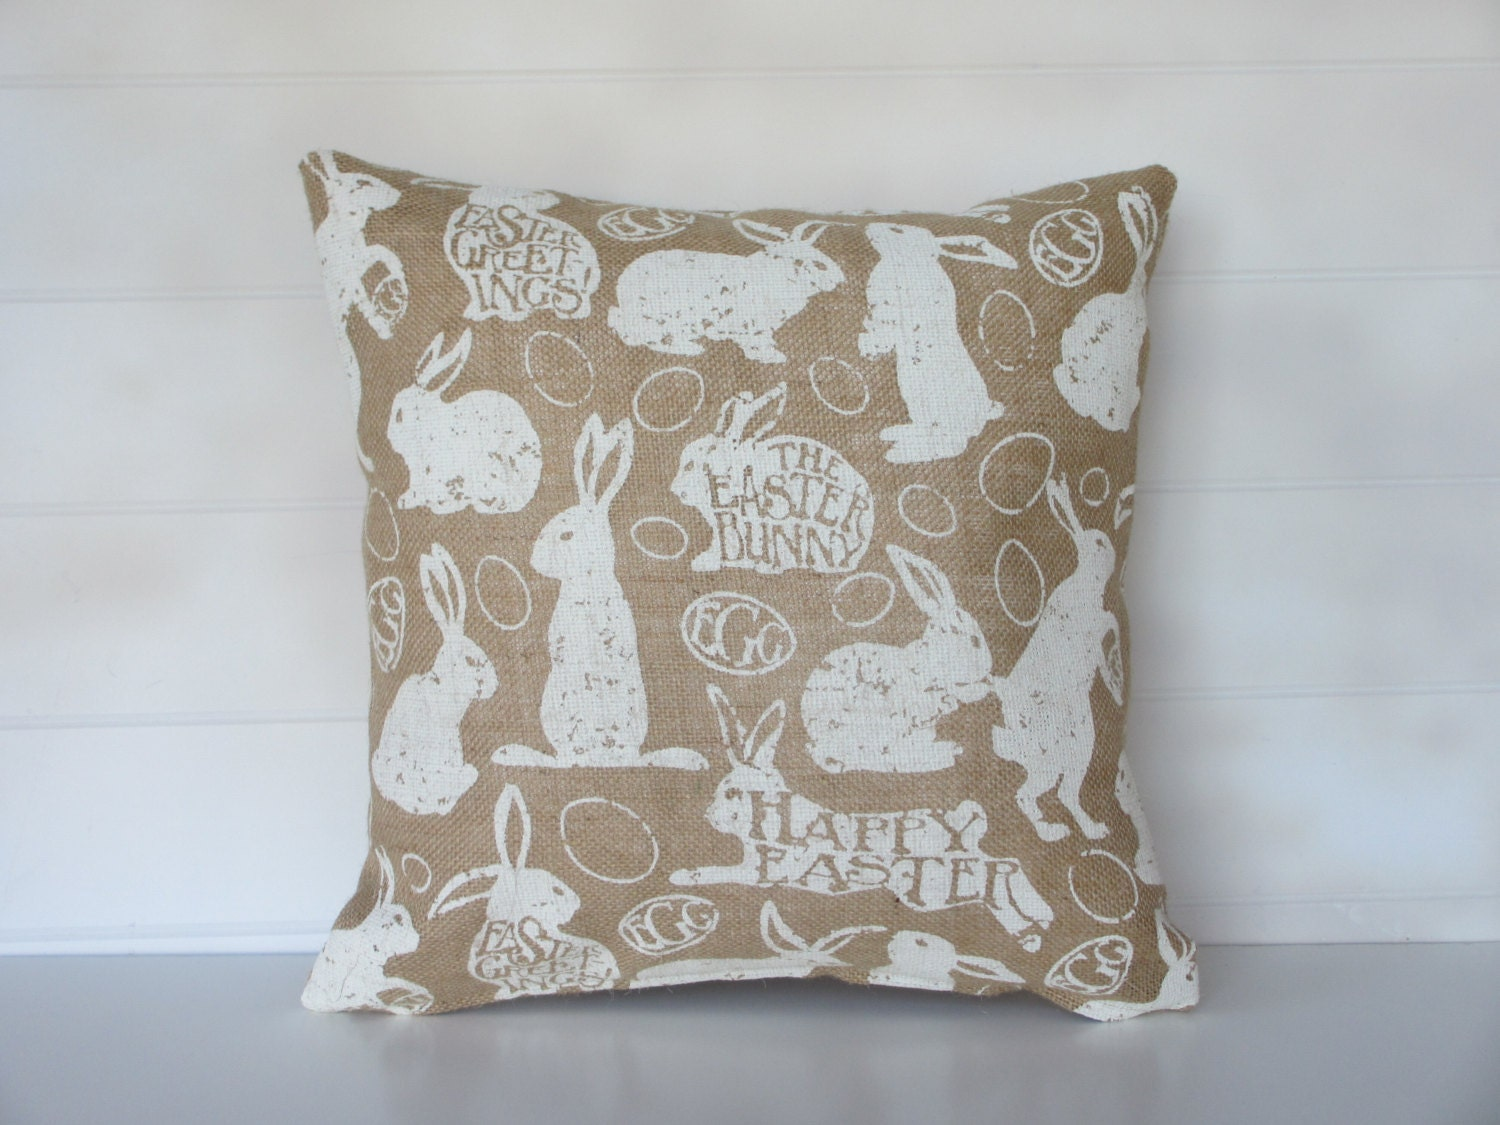 Decorative Pillows For Easter : Easter Bunny Burlap Pillow Cover Easter Decor Easter Egg